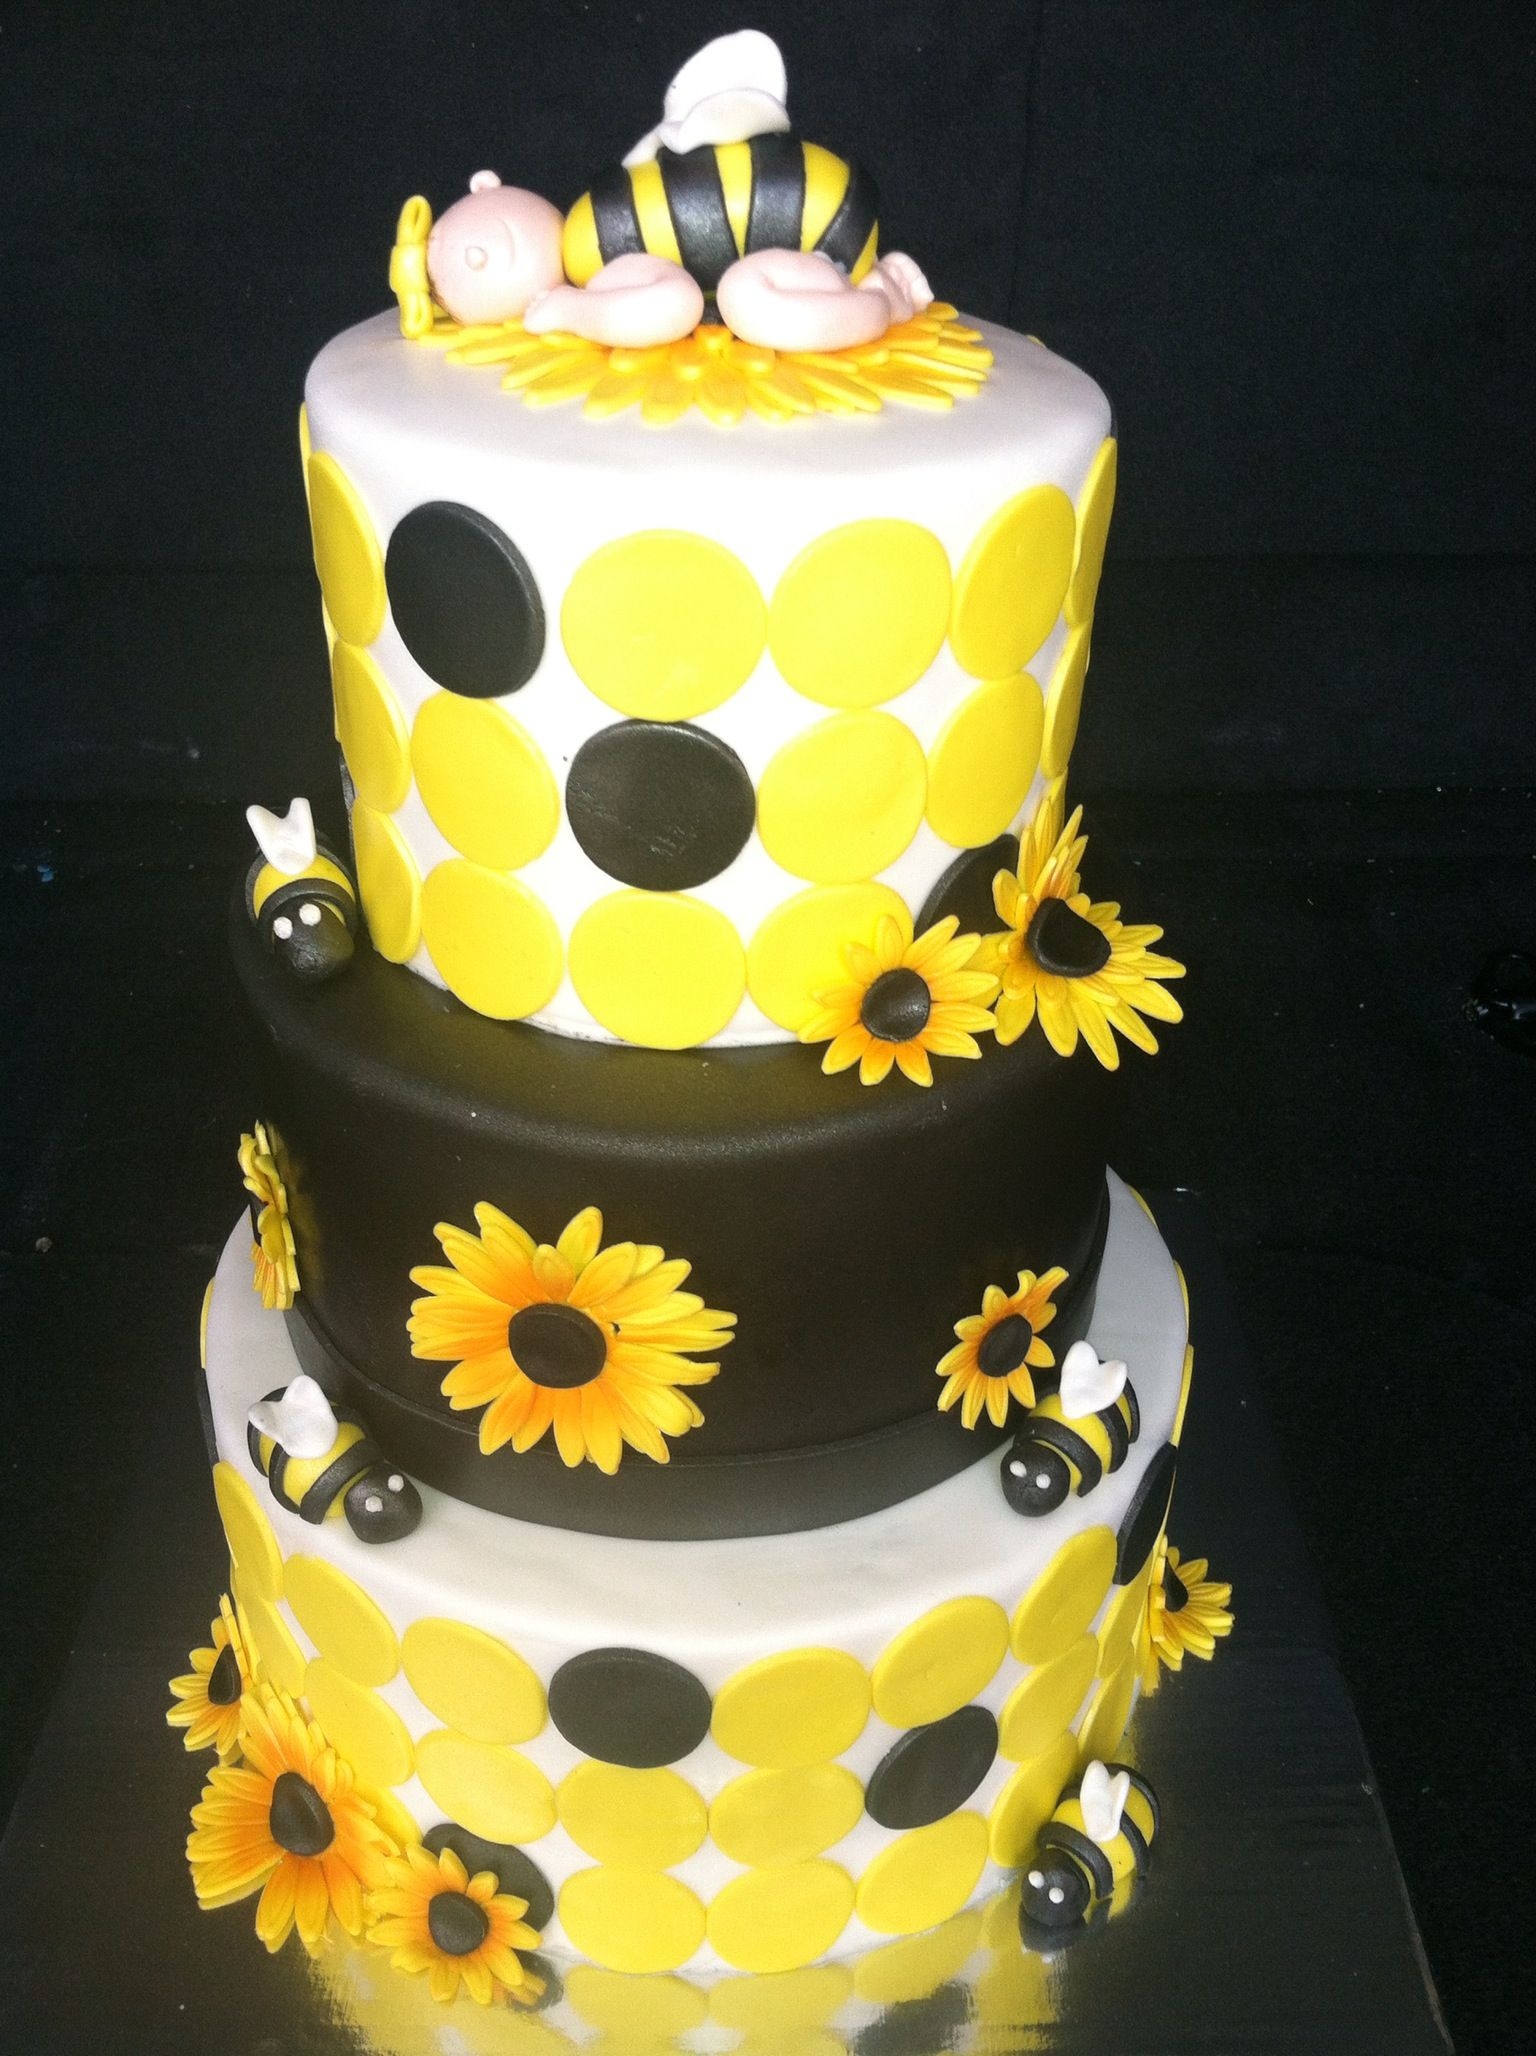 Charming Bumble Bee Baby Shower Cake Kelcie Nichole Ideas My Nie More At Recipins.com